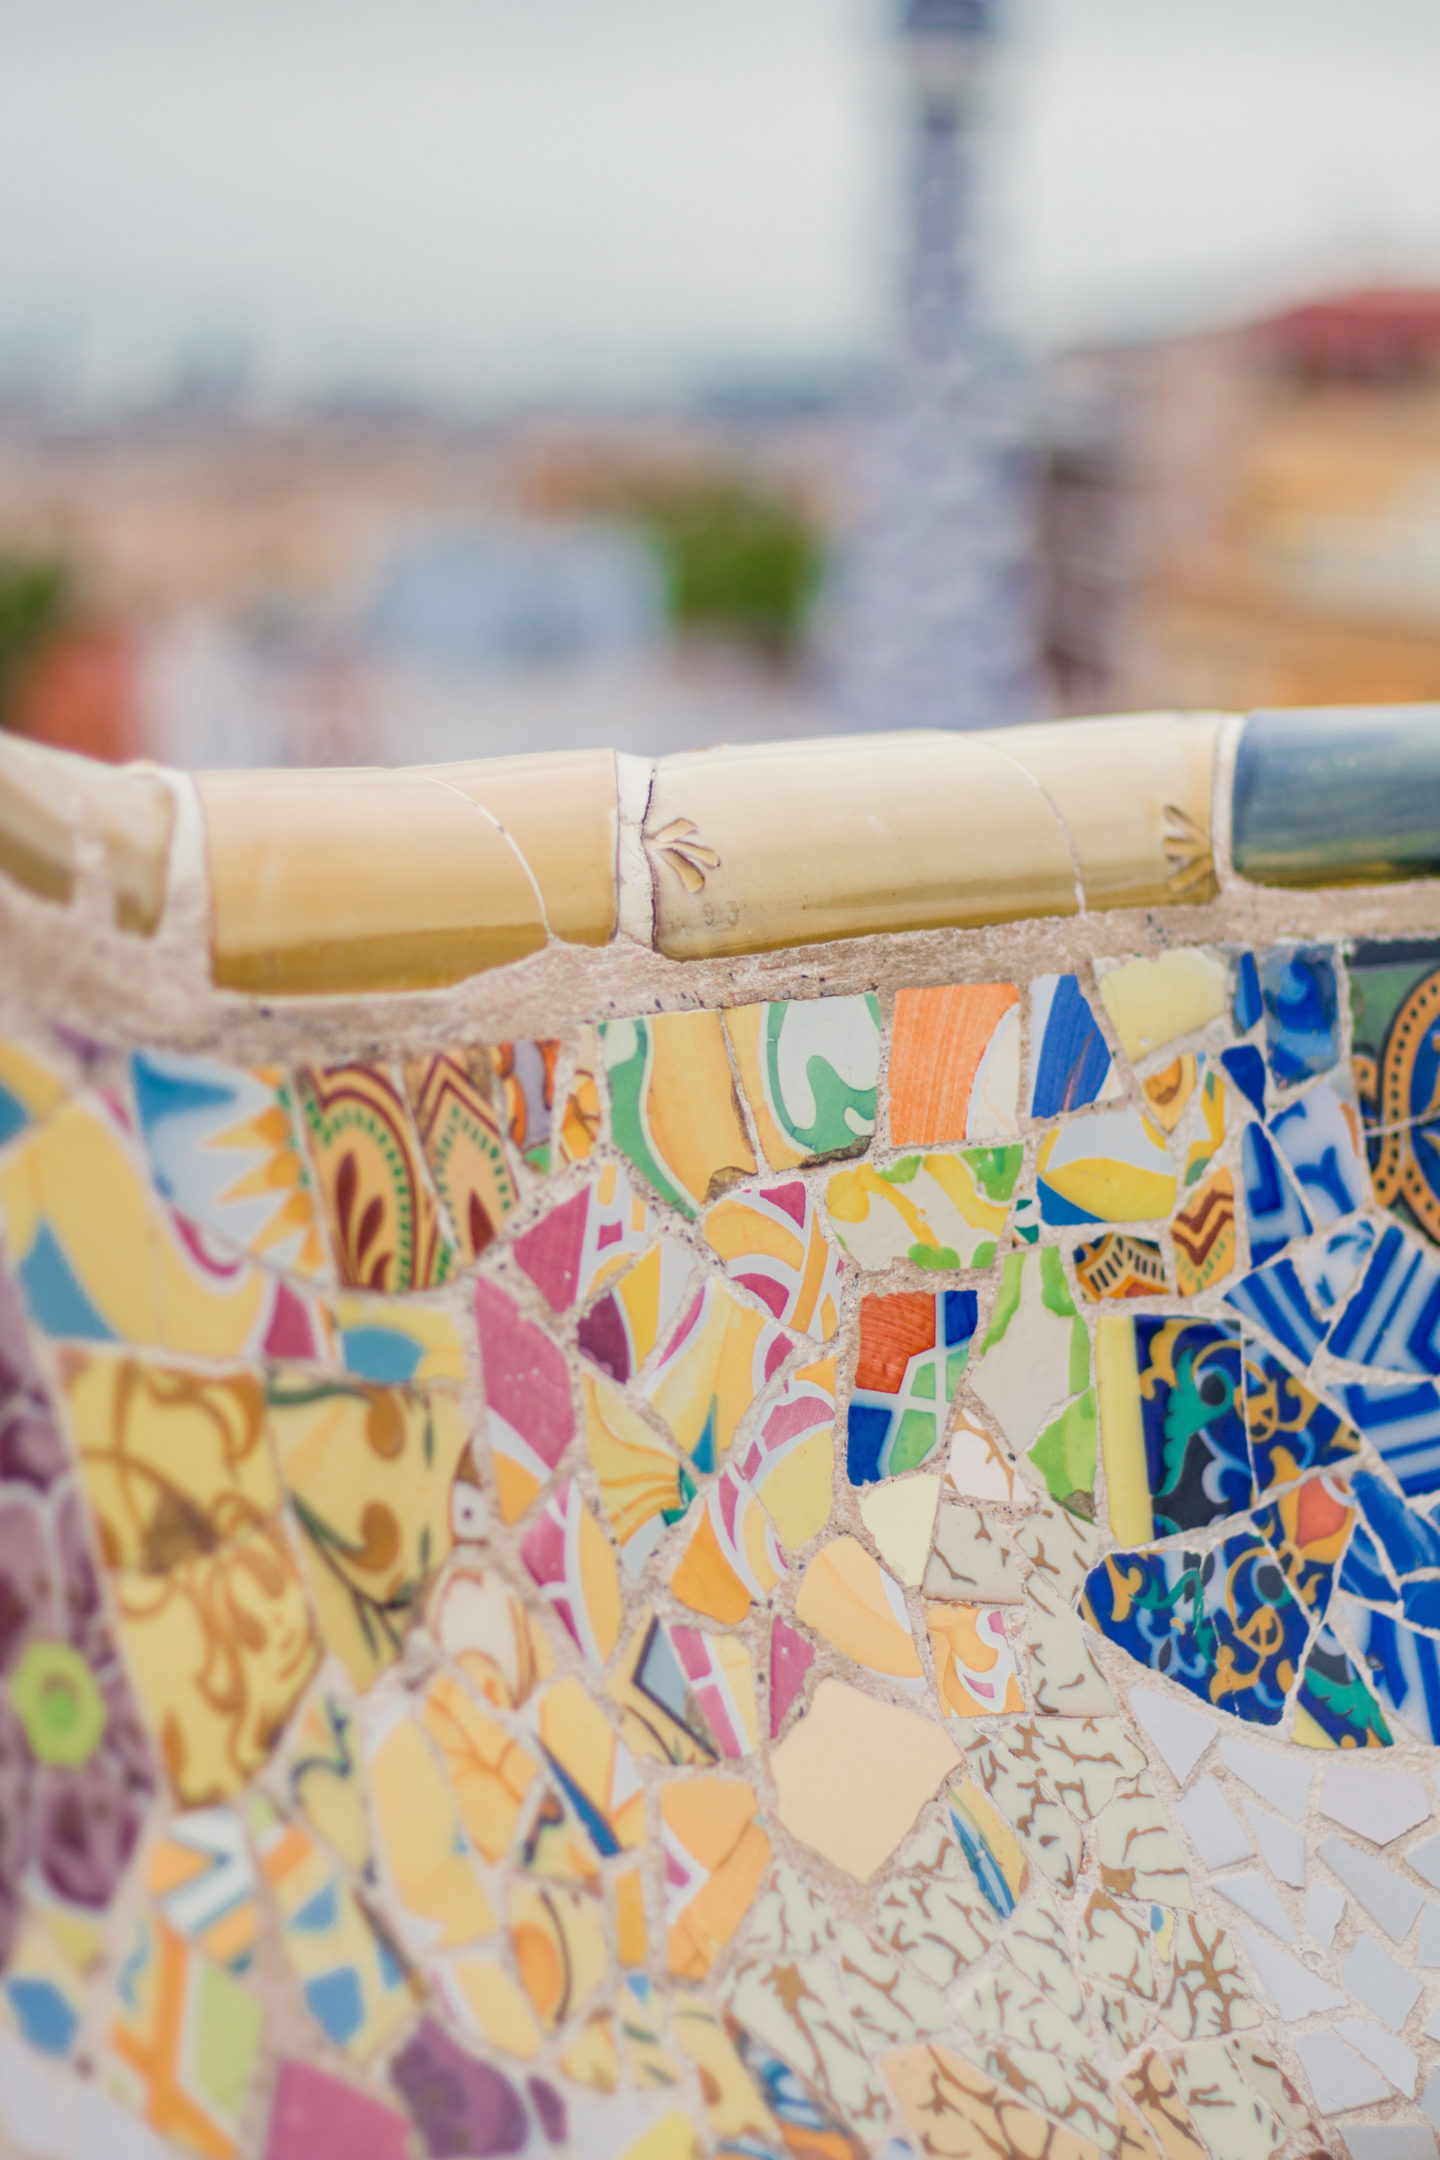 Quick Barcelona Travel Itinerary | What to See & Where to Eat | Park Guell